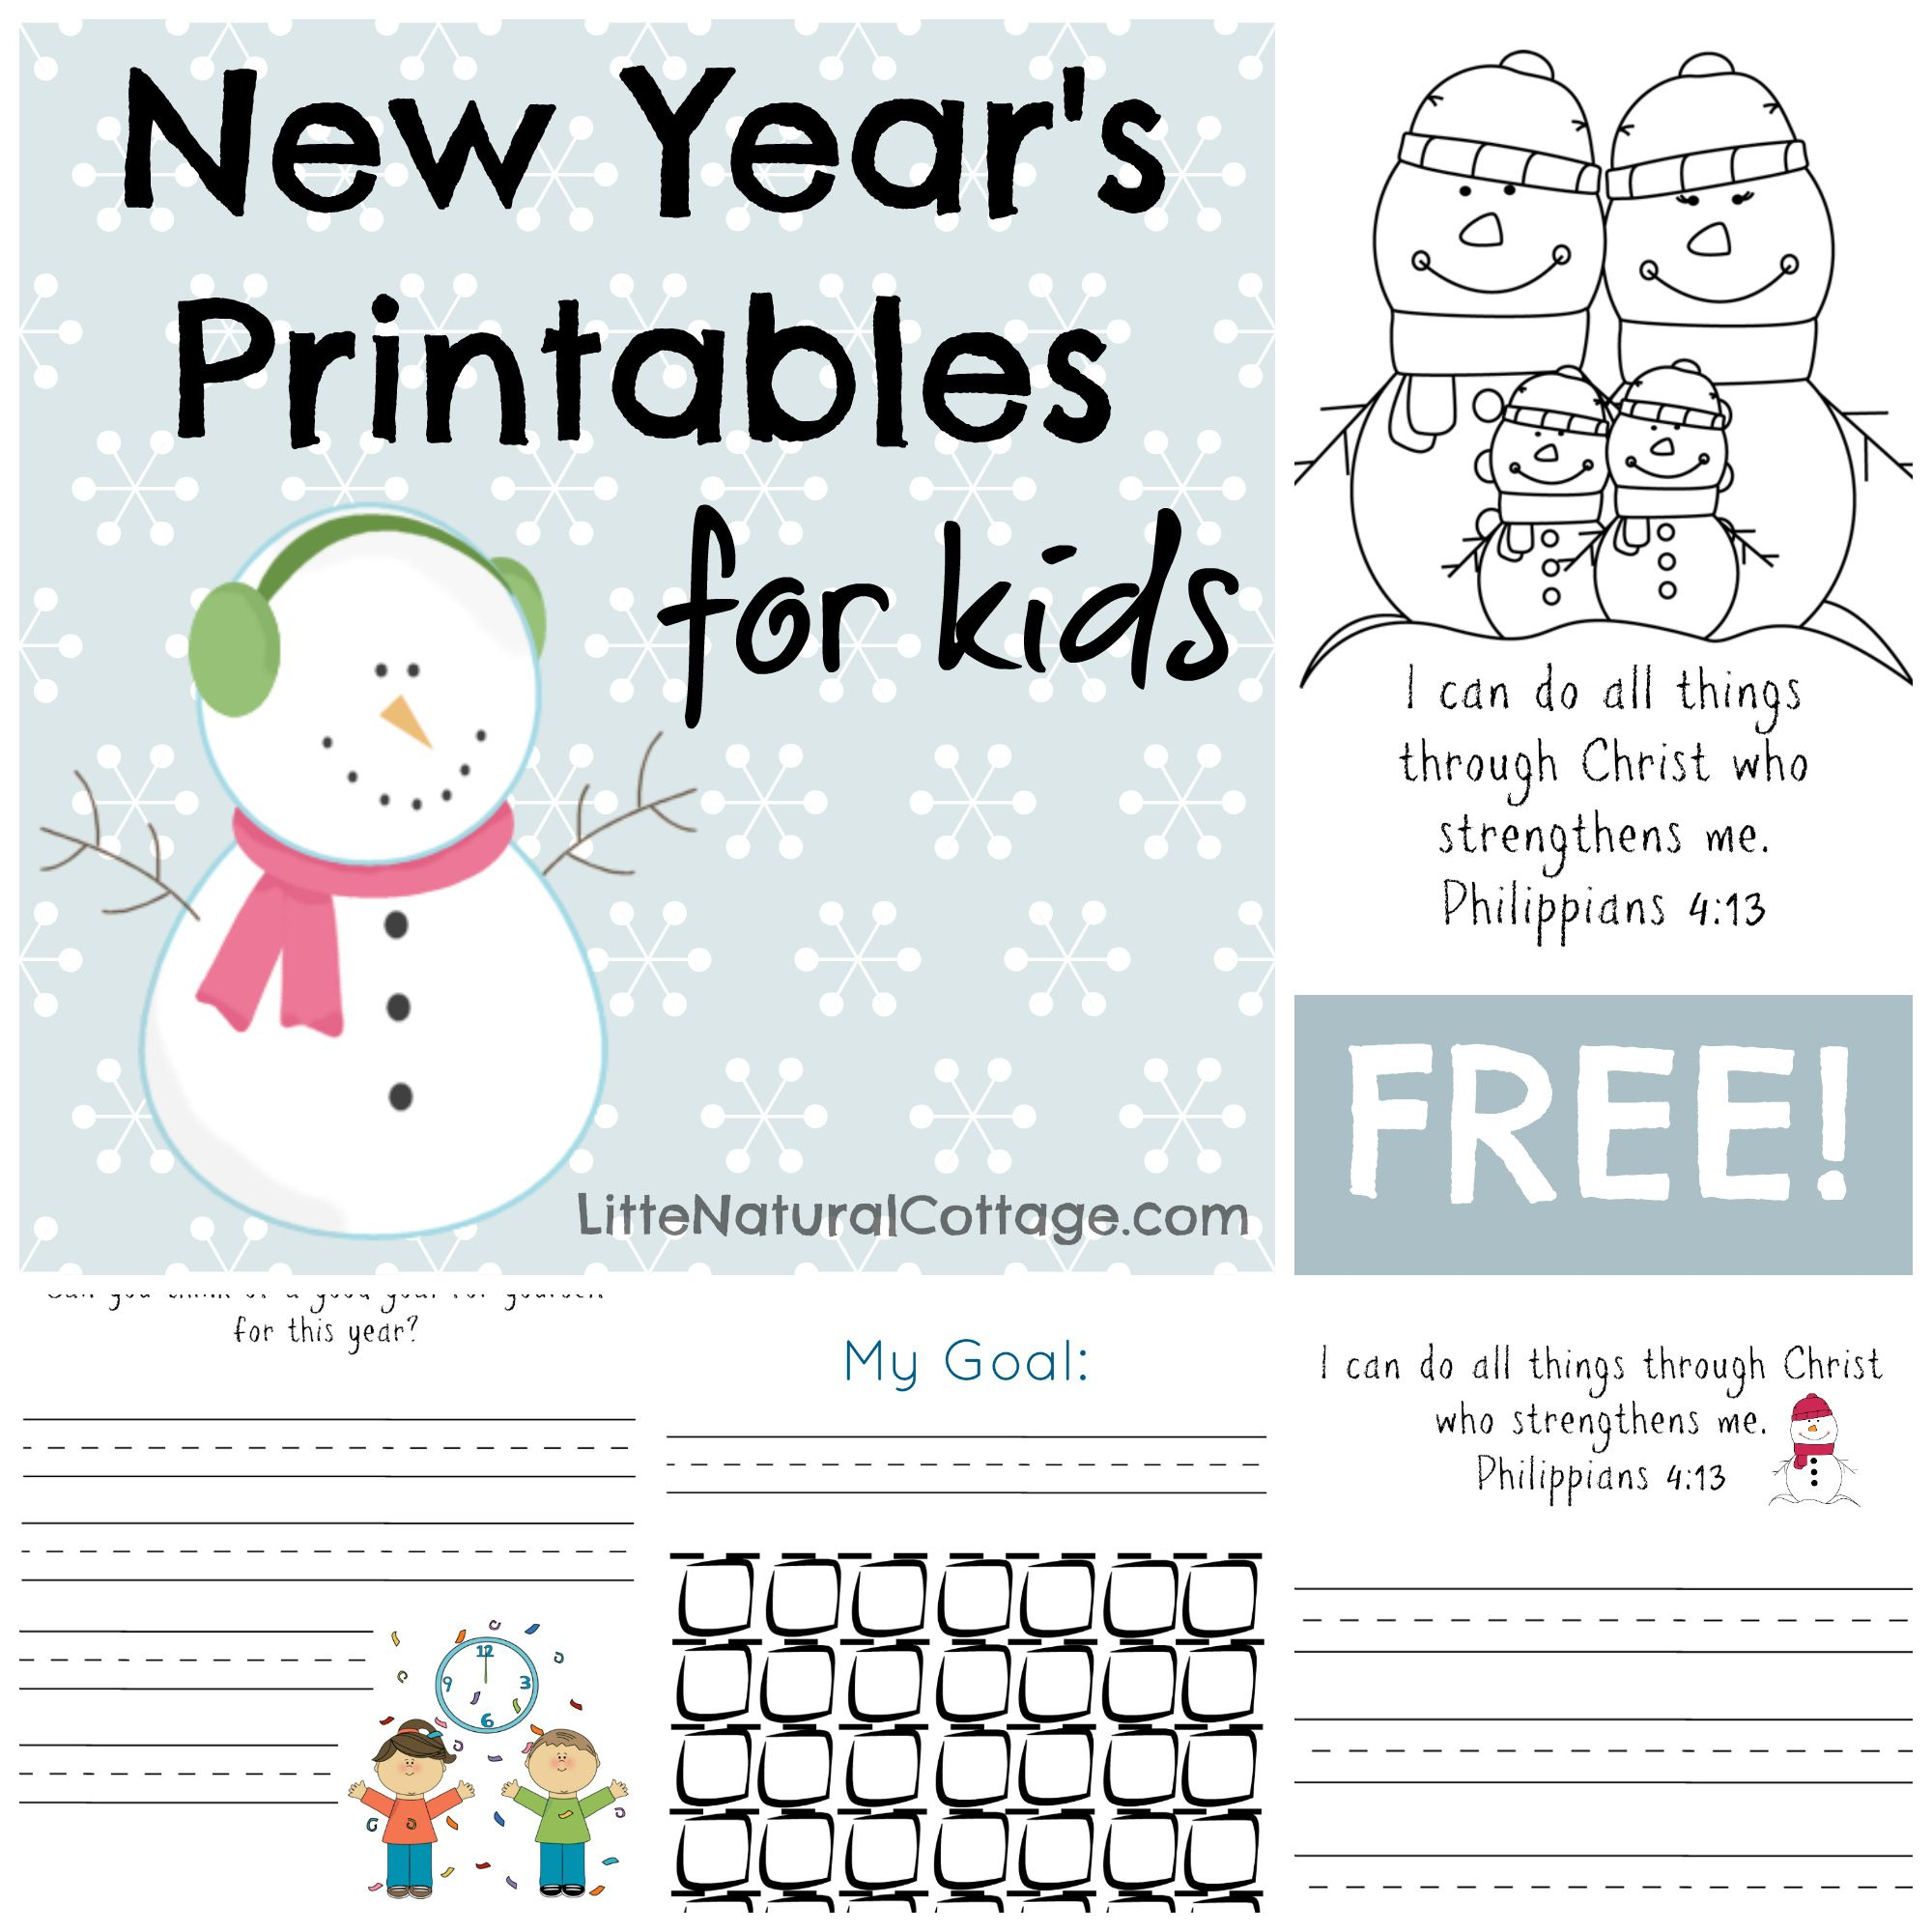 Free printable goal-setting for kids | Free Printables | Pinterest